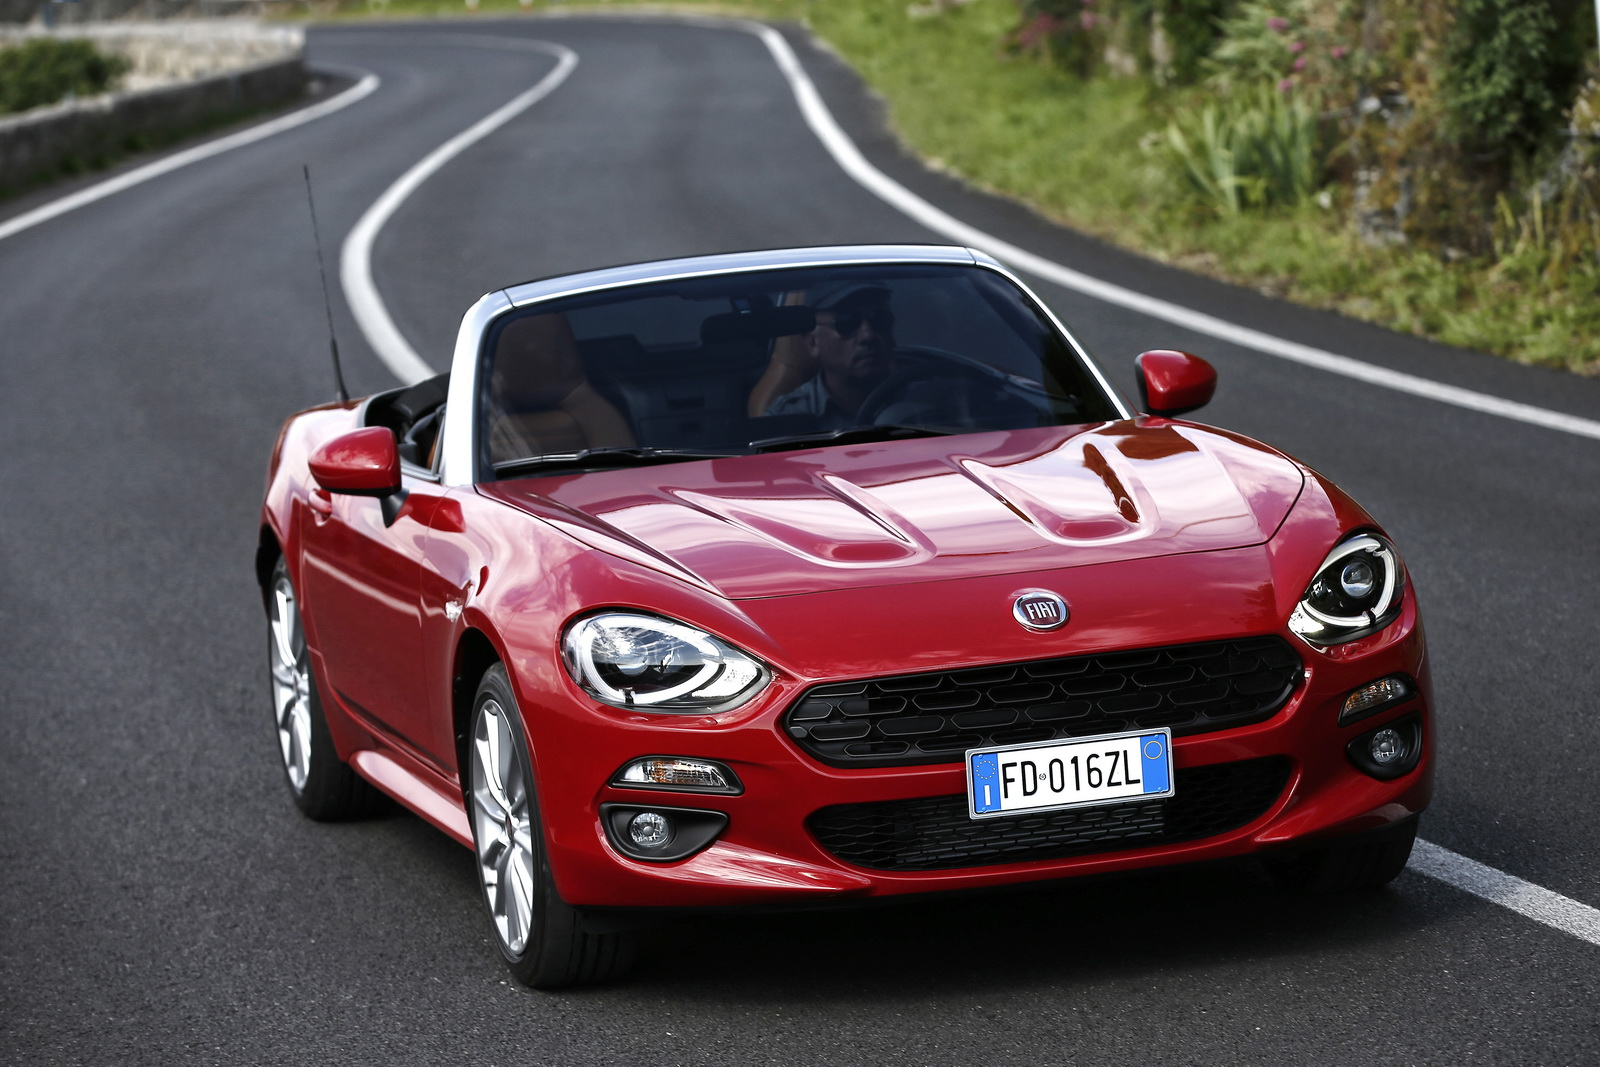 New Fiat 124 Spider Priced From £19,545 In The UK